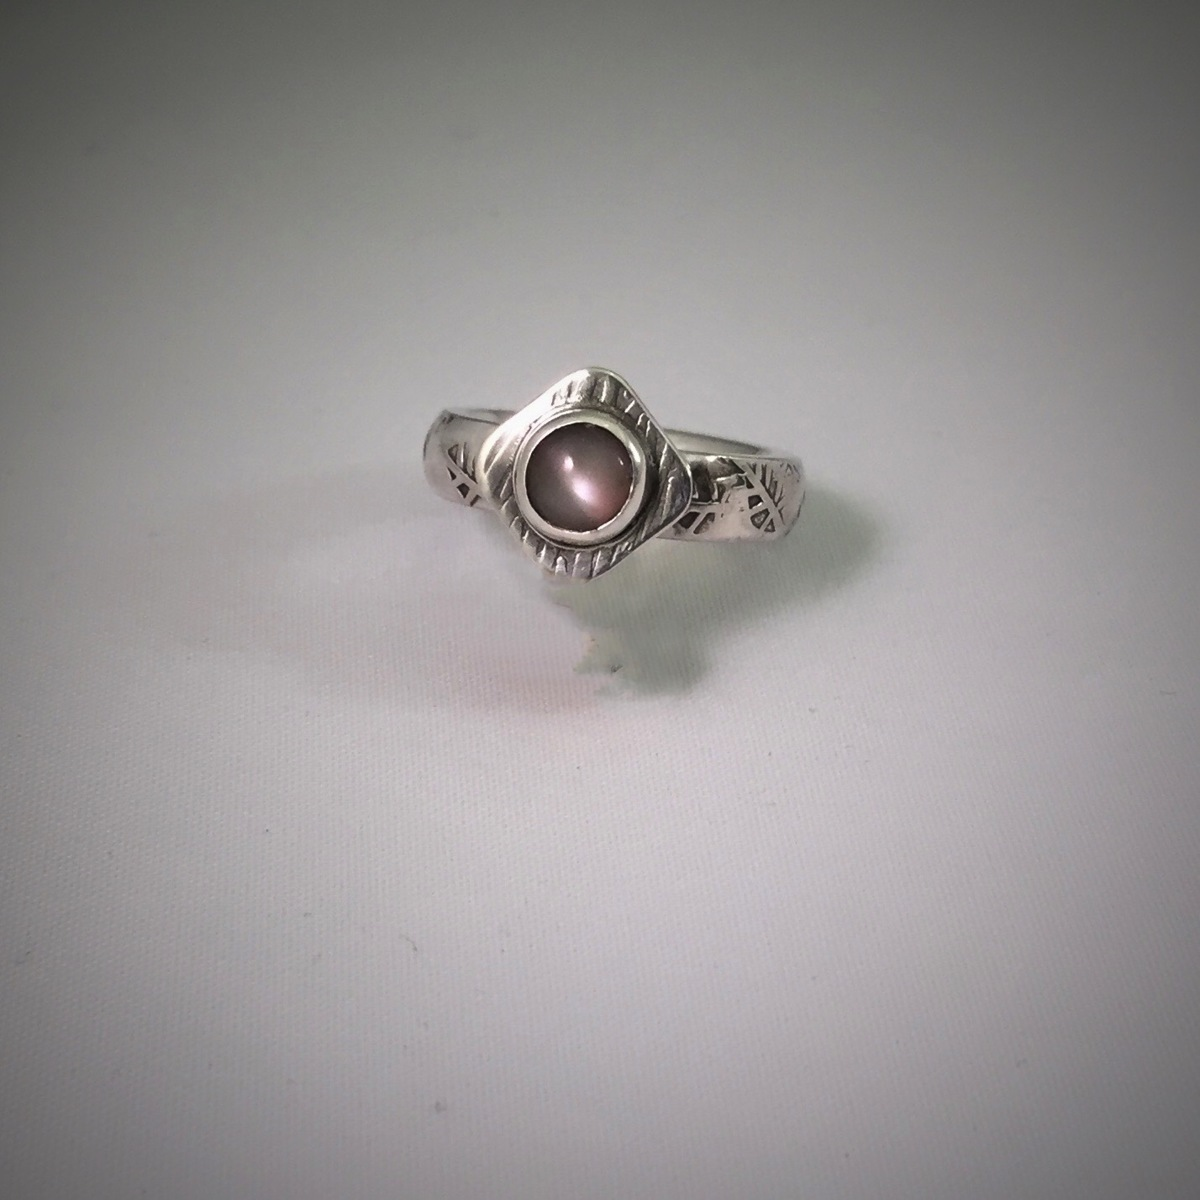 Hollow Patterned Silver Ring With Grey Moonstone (large view)